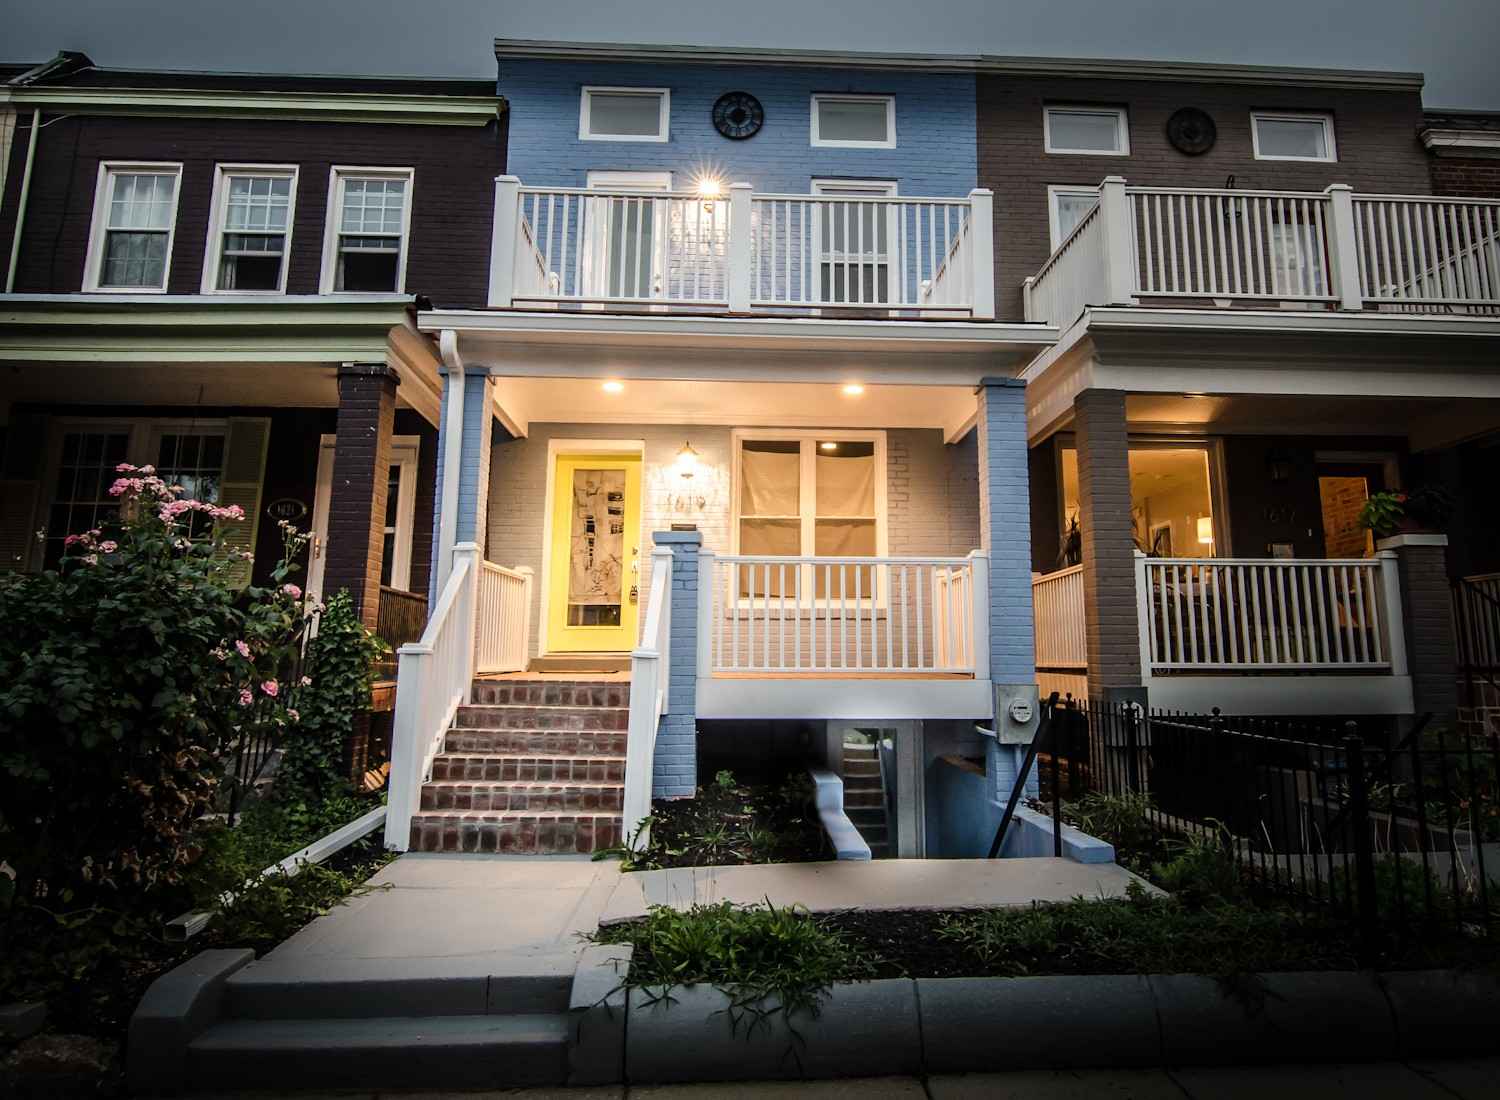 1619 Independence Avenue Southeast B Washington Dc 20003 1 Bedroom Apartment For Rent For